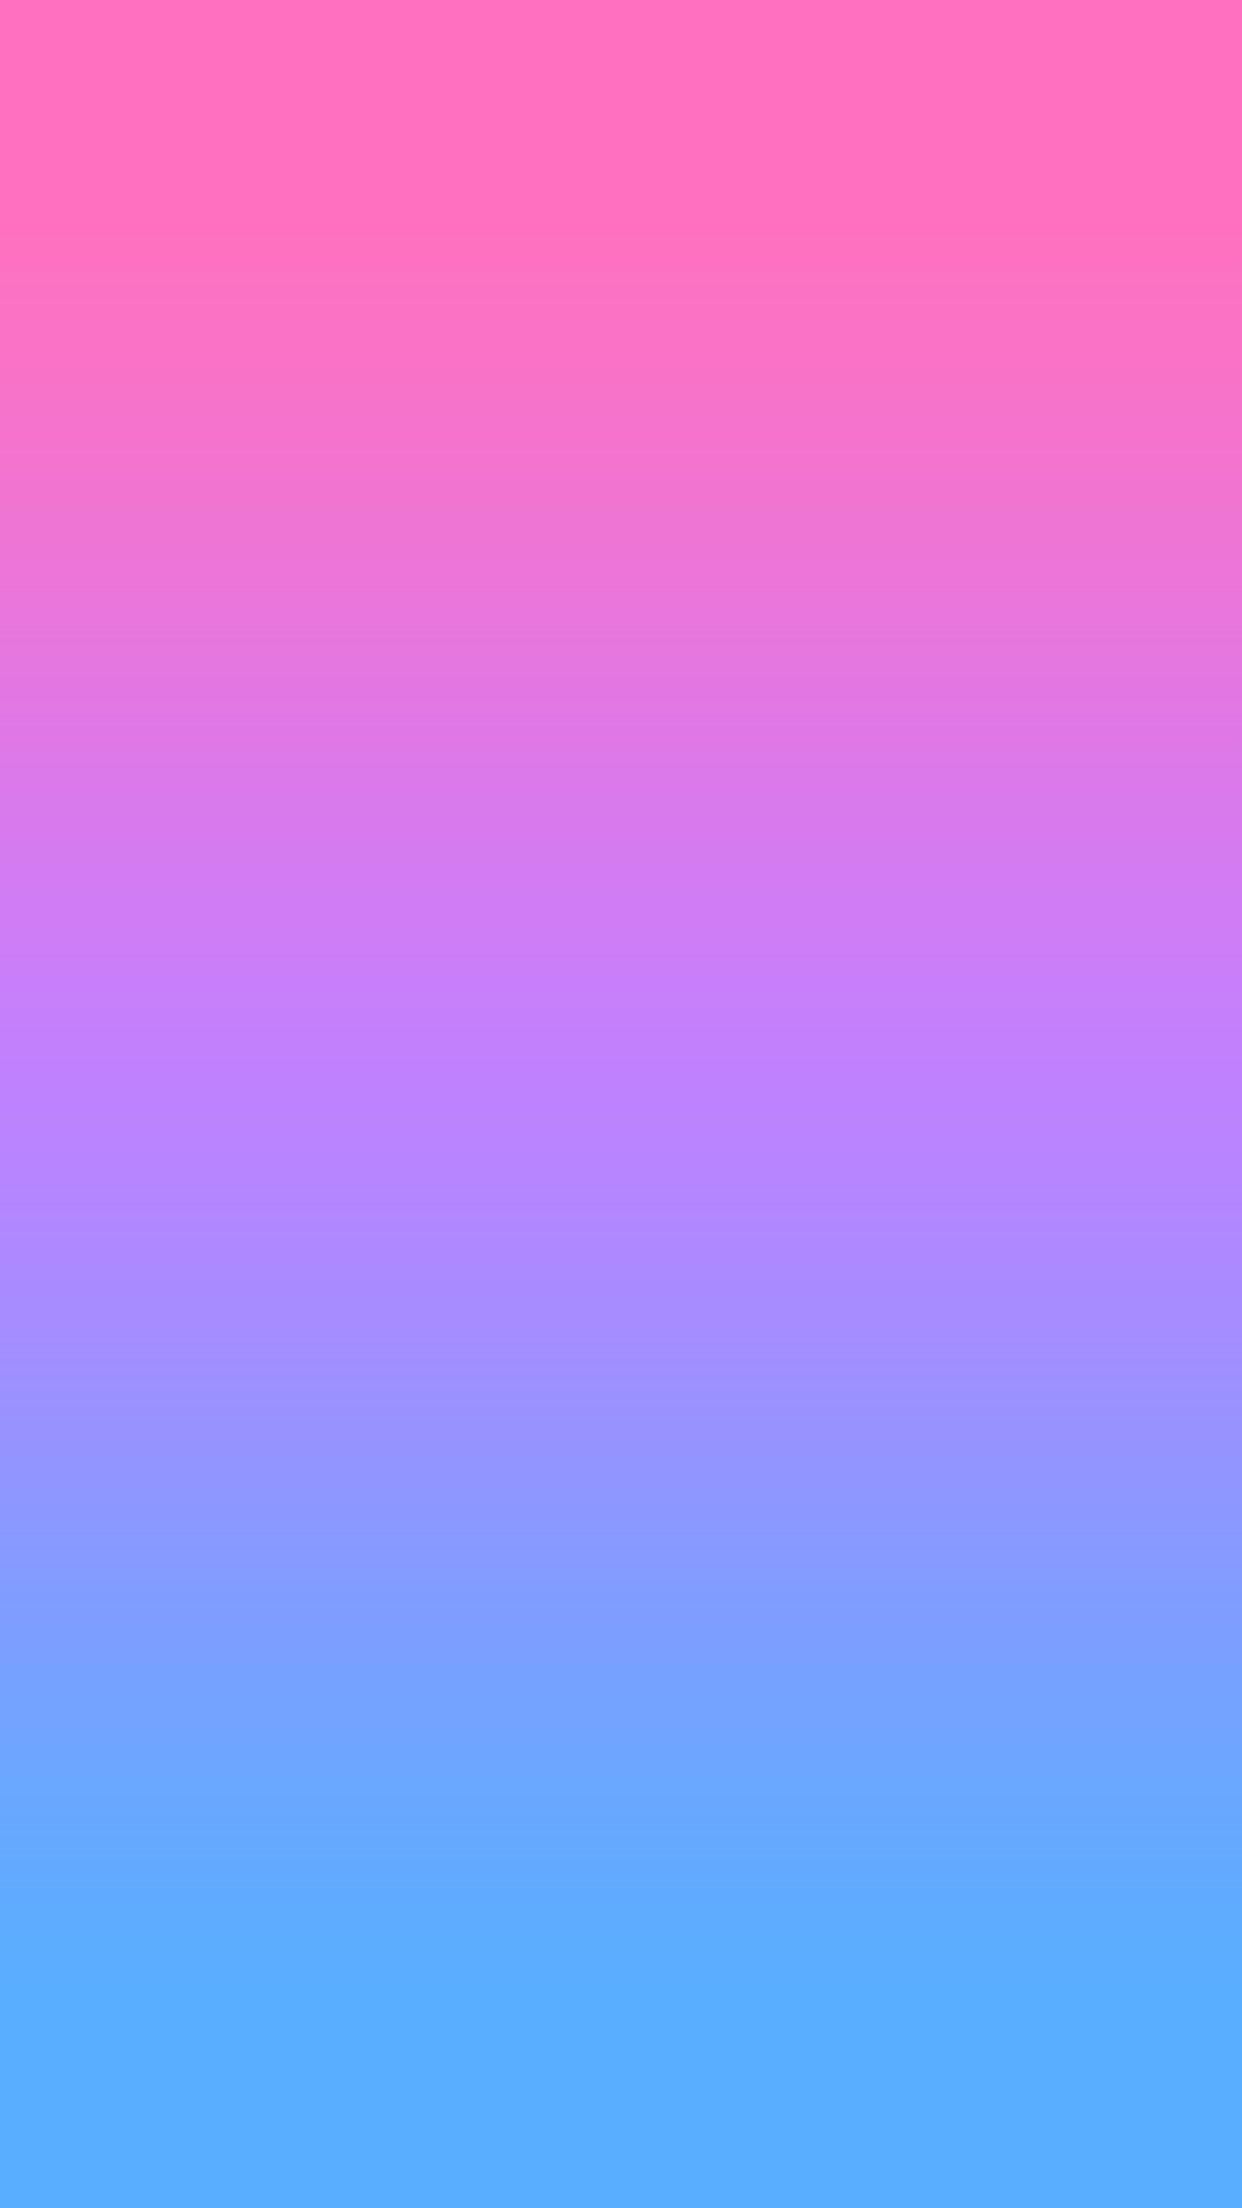 pink, purple, blue, violet, gradient, ombre, wallpaper, background,